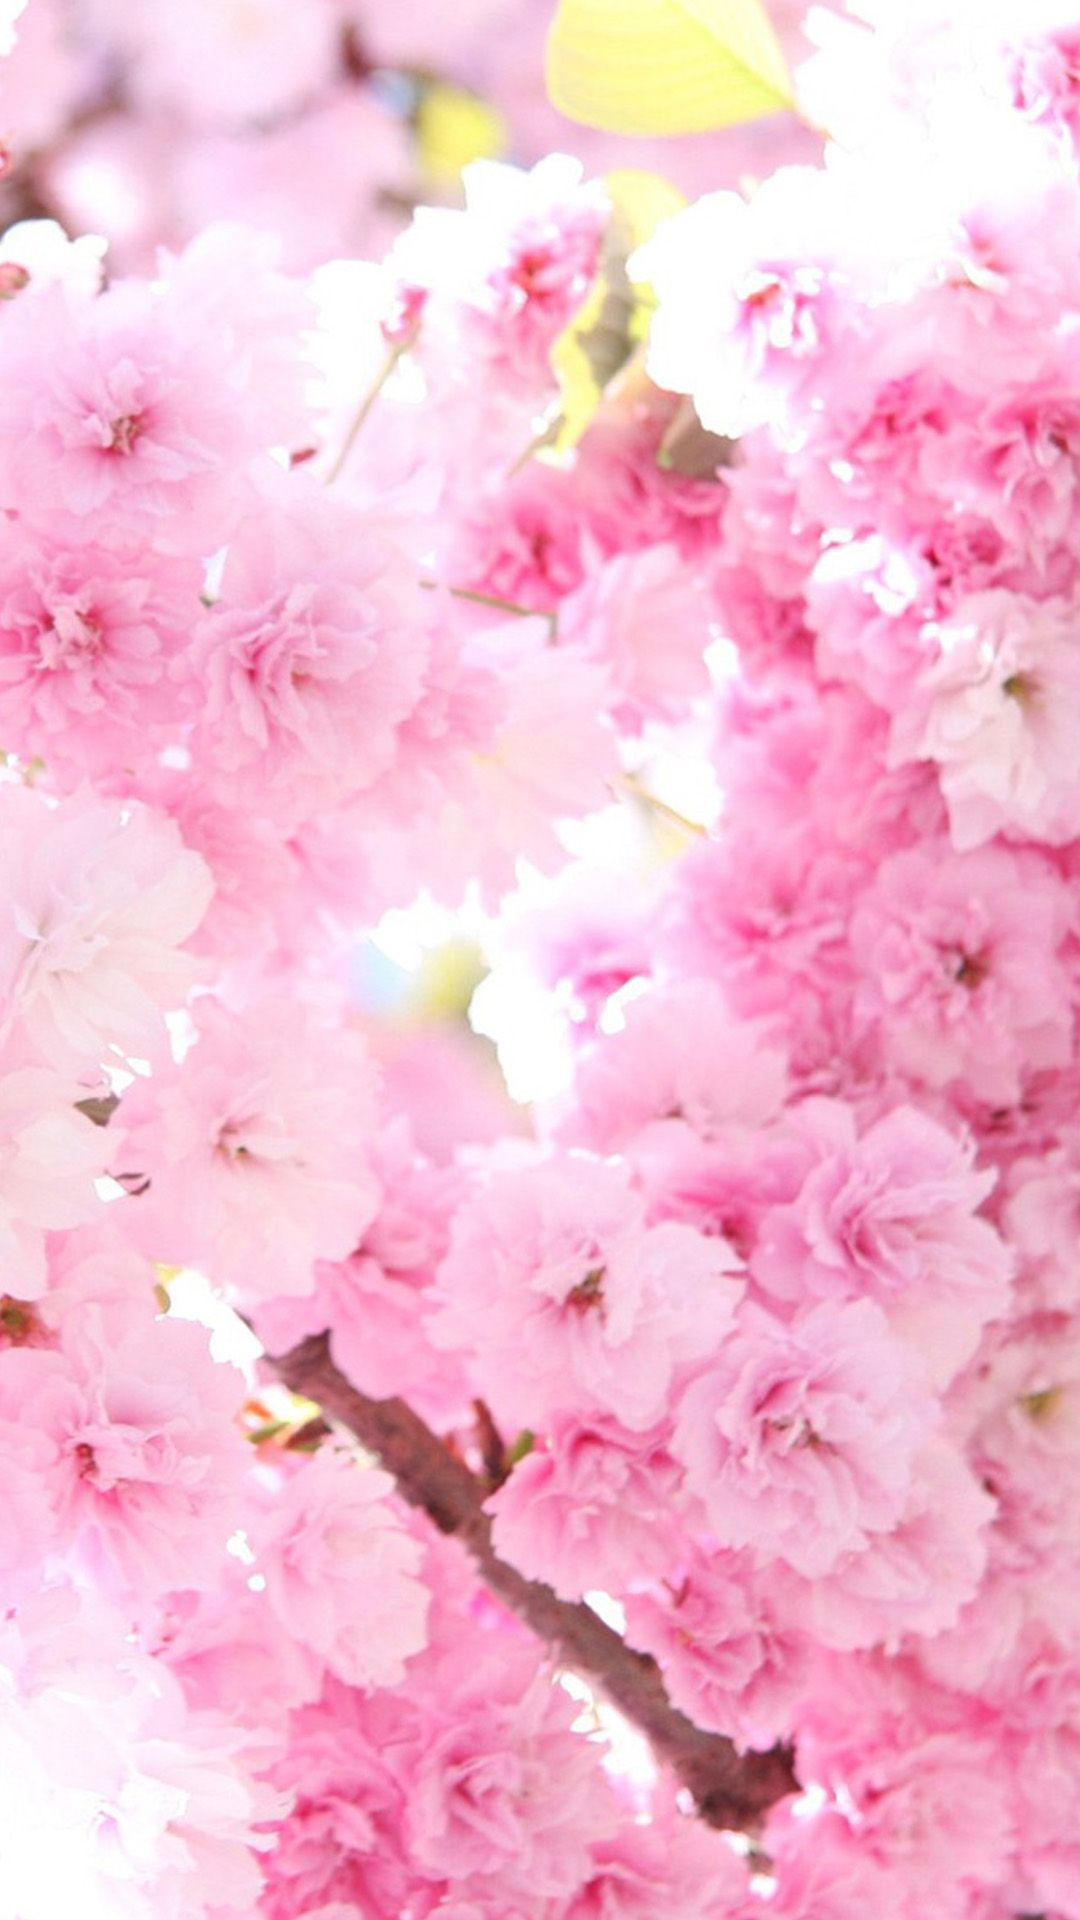 Pink Cherry Blossoms Hd Wallpaper Iphone 6 Plus Wallpapersmobile Net Flower Background Iphone Best Flower Wallpaper Flower Wallpaper